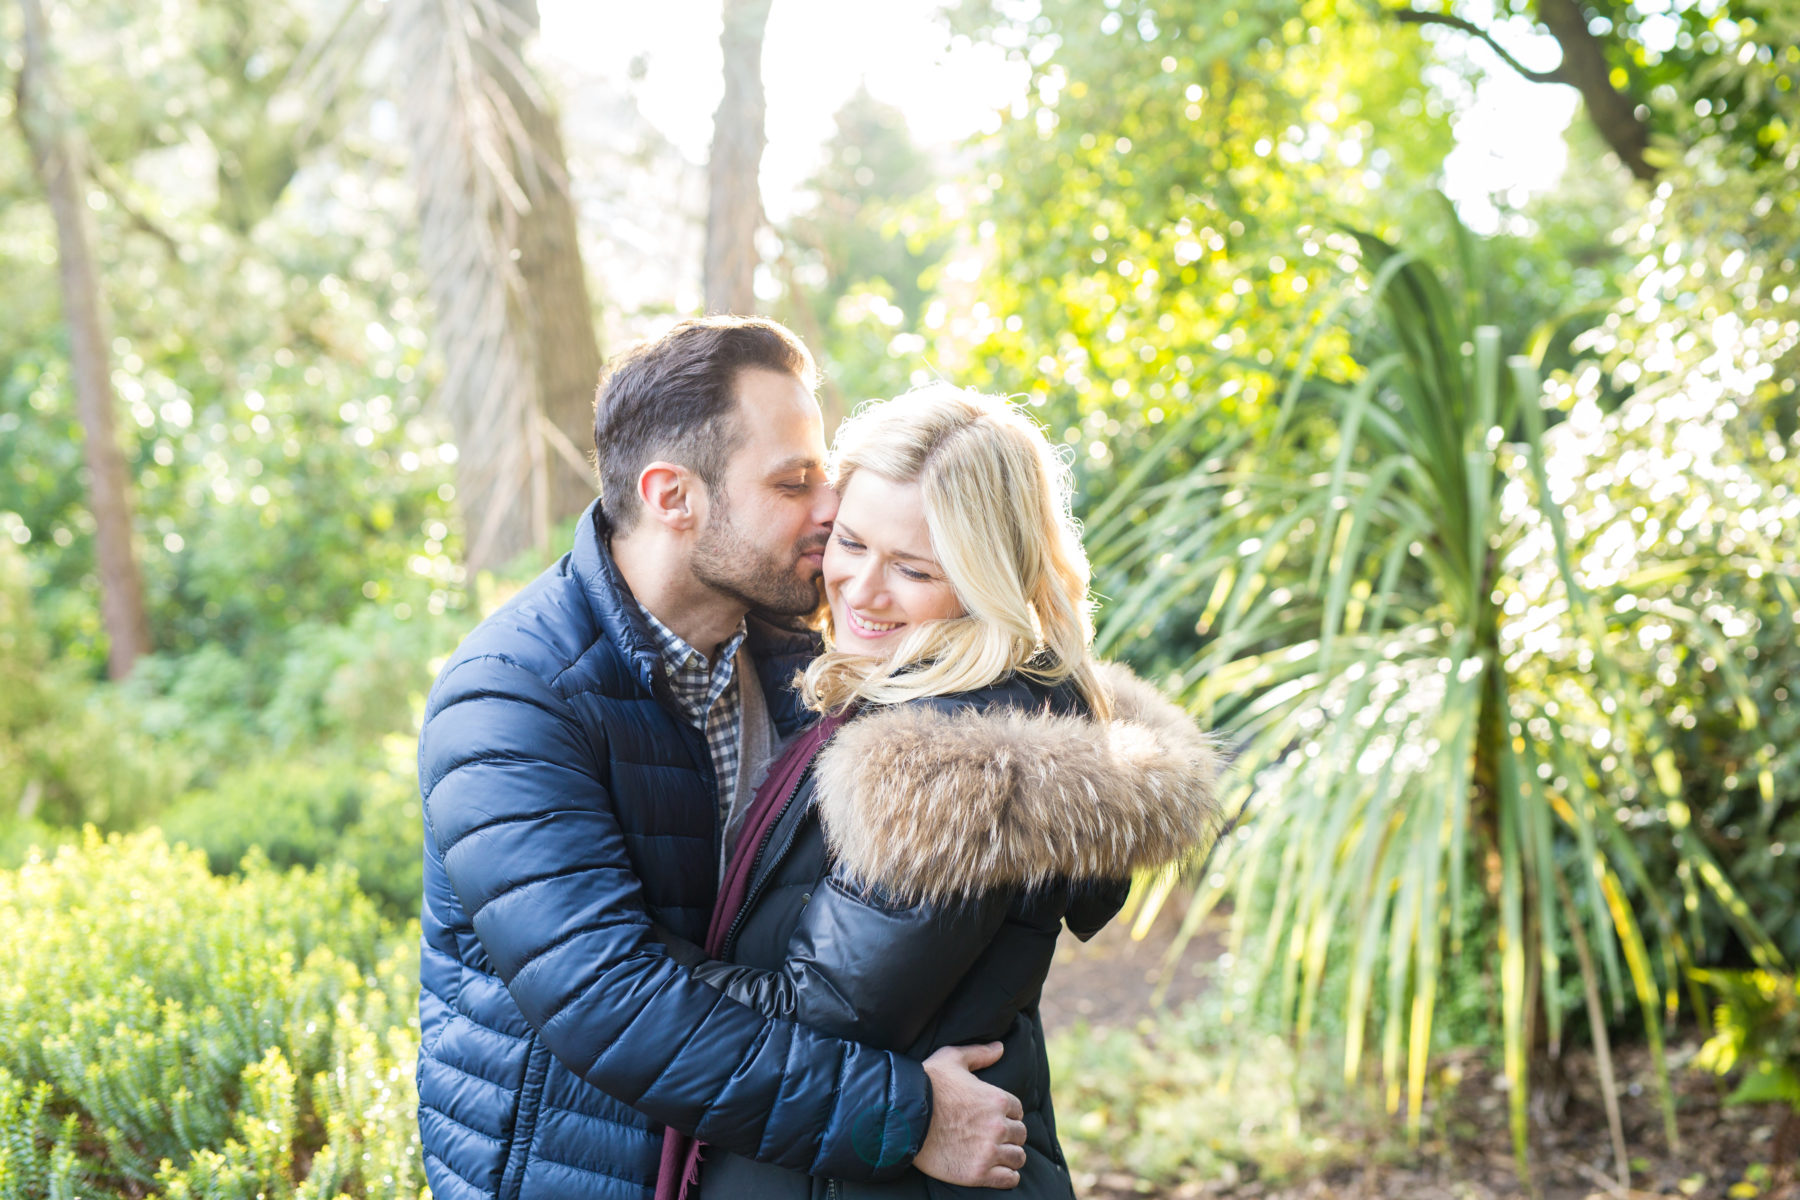 Valley Garden Engagement Shoot: Victoria and Ryan.